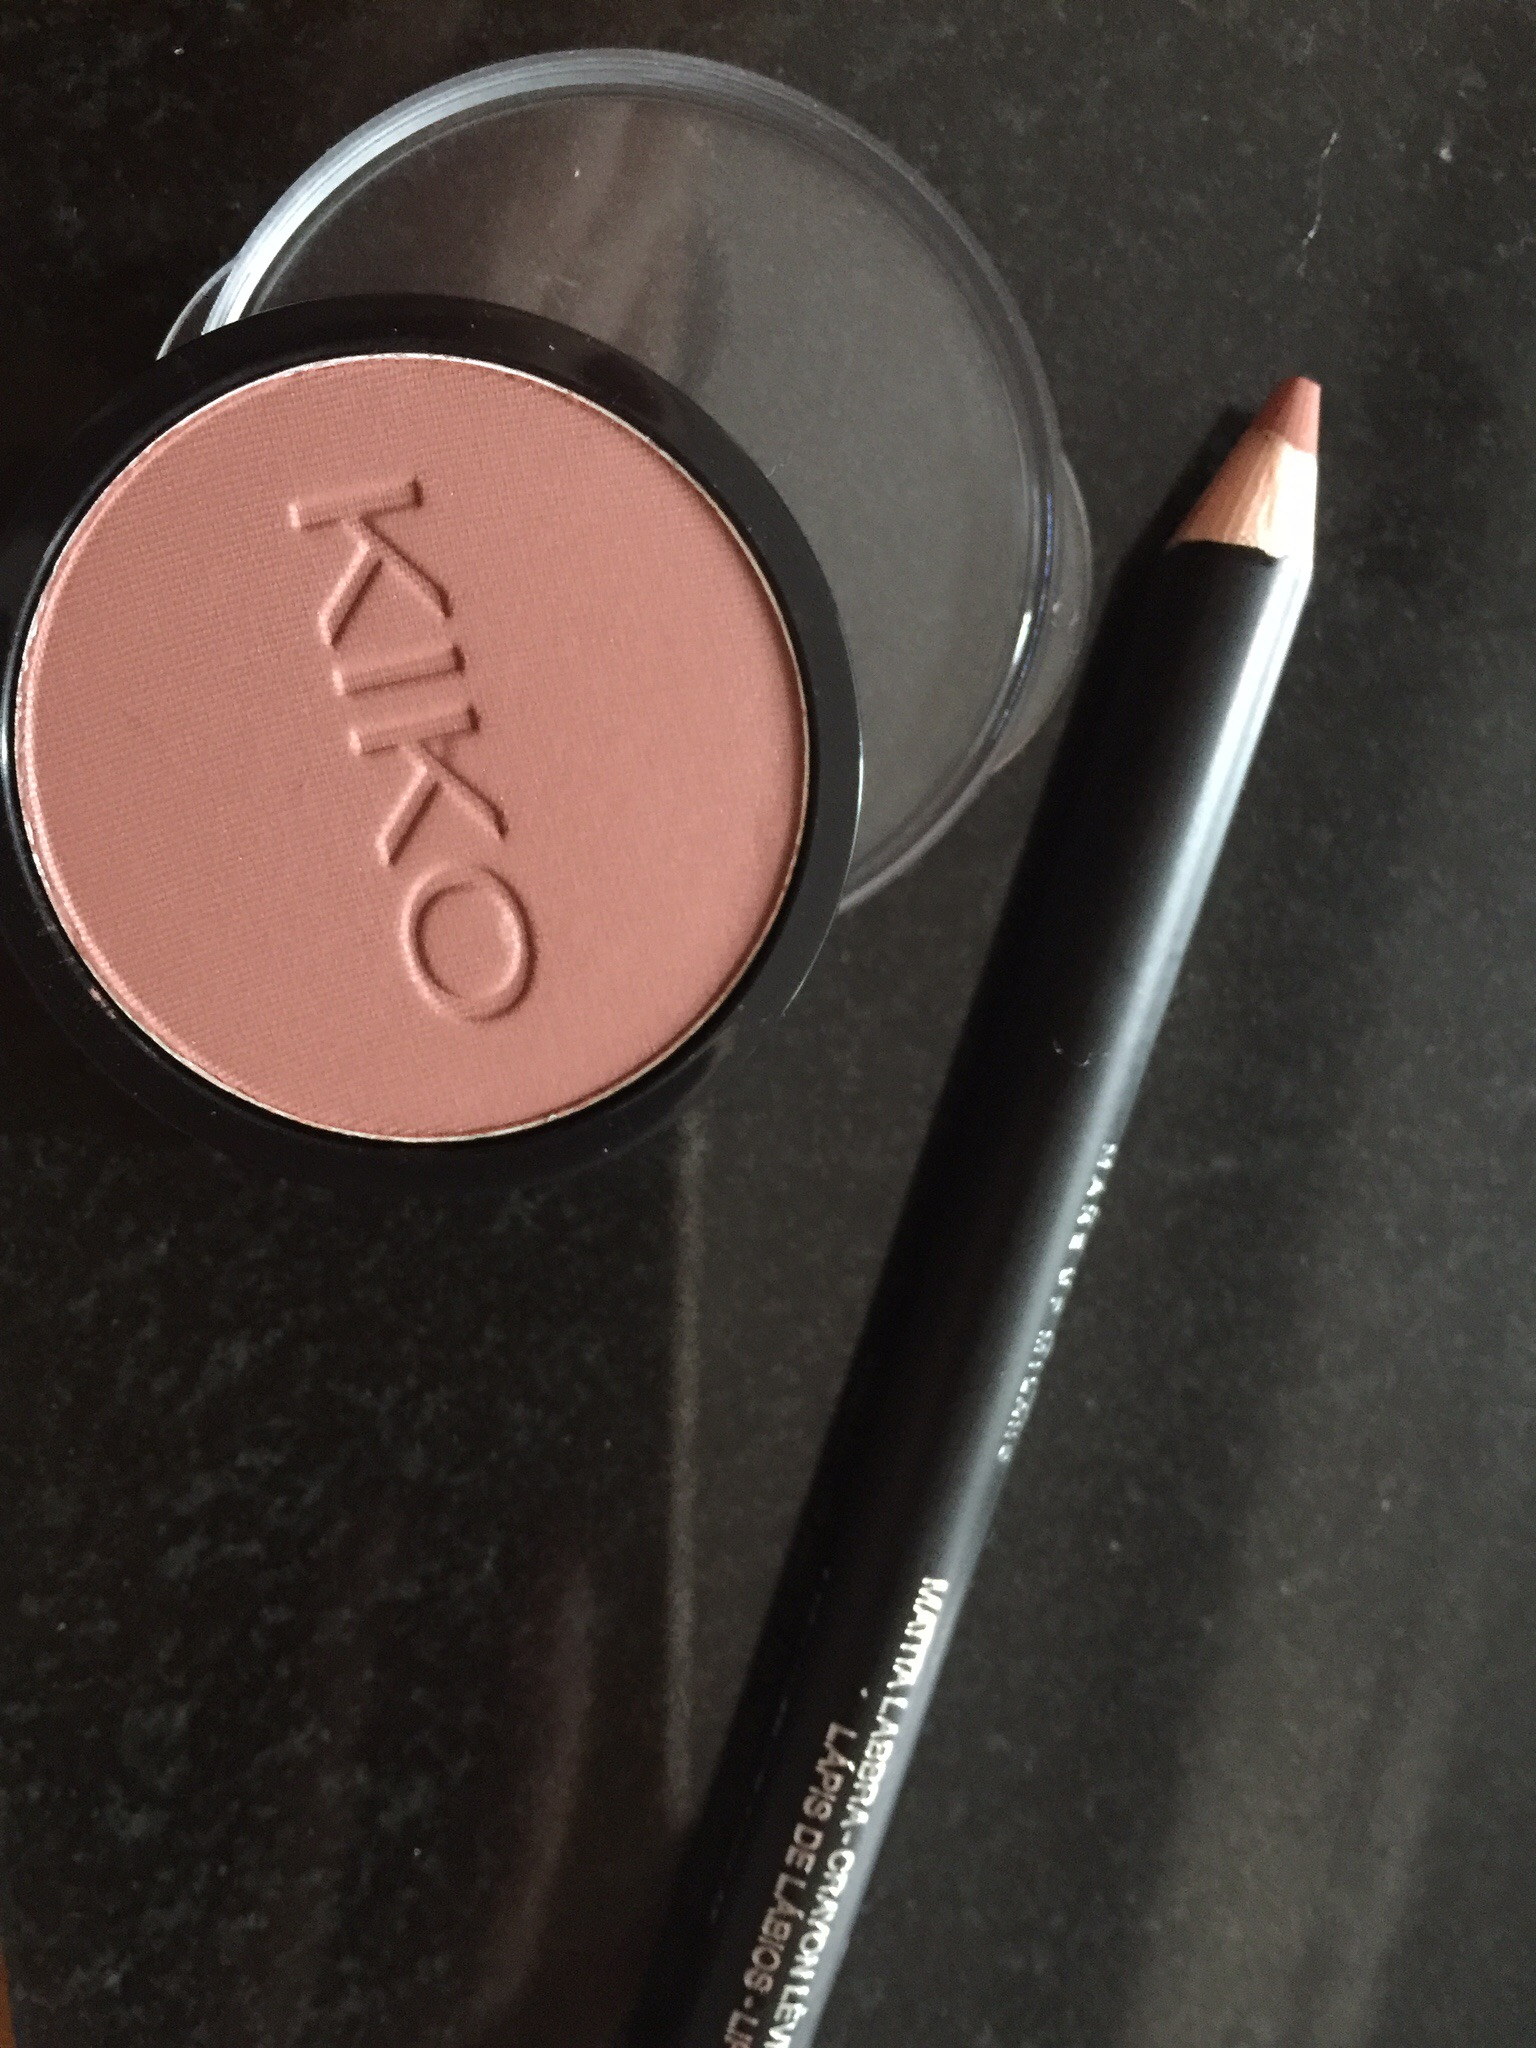 kiko satin brick review kiko smart lip pencil 700 review